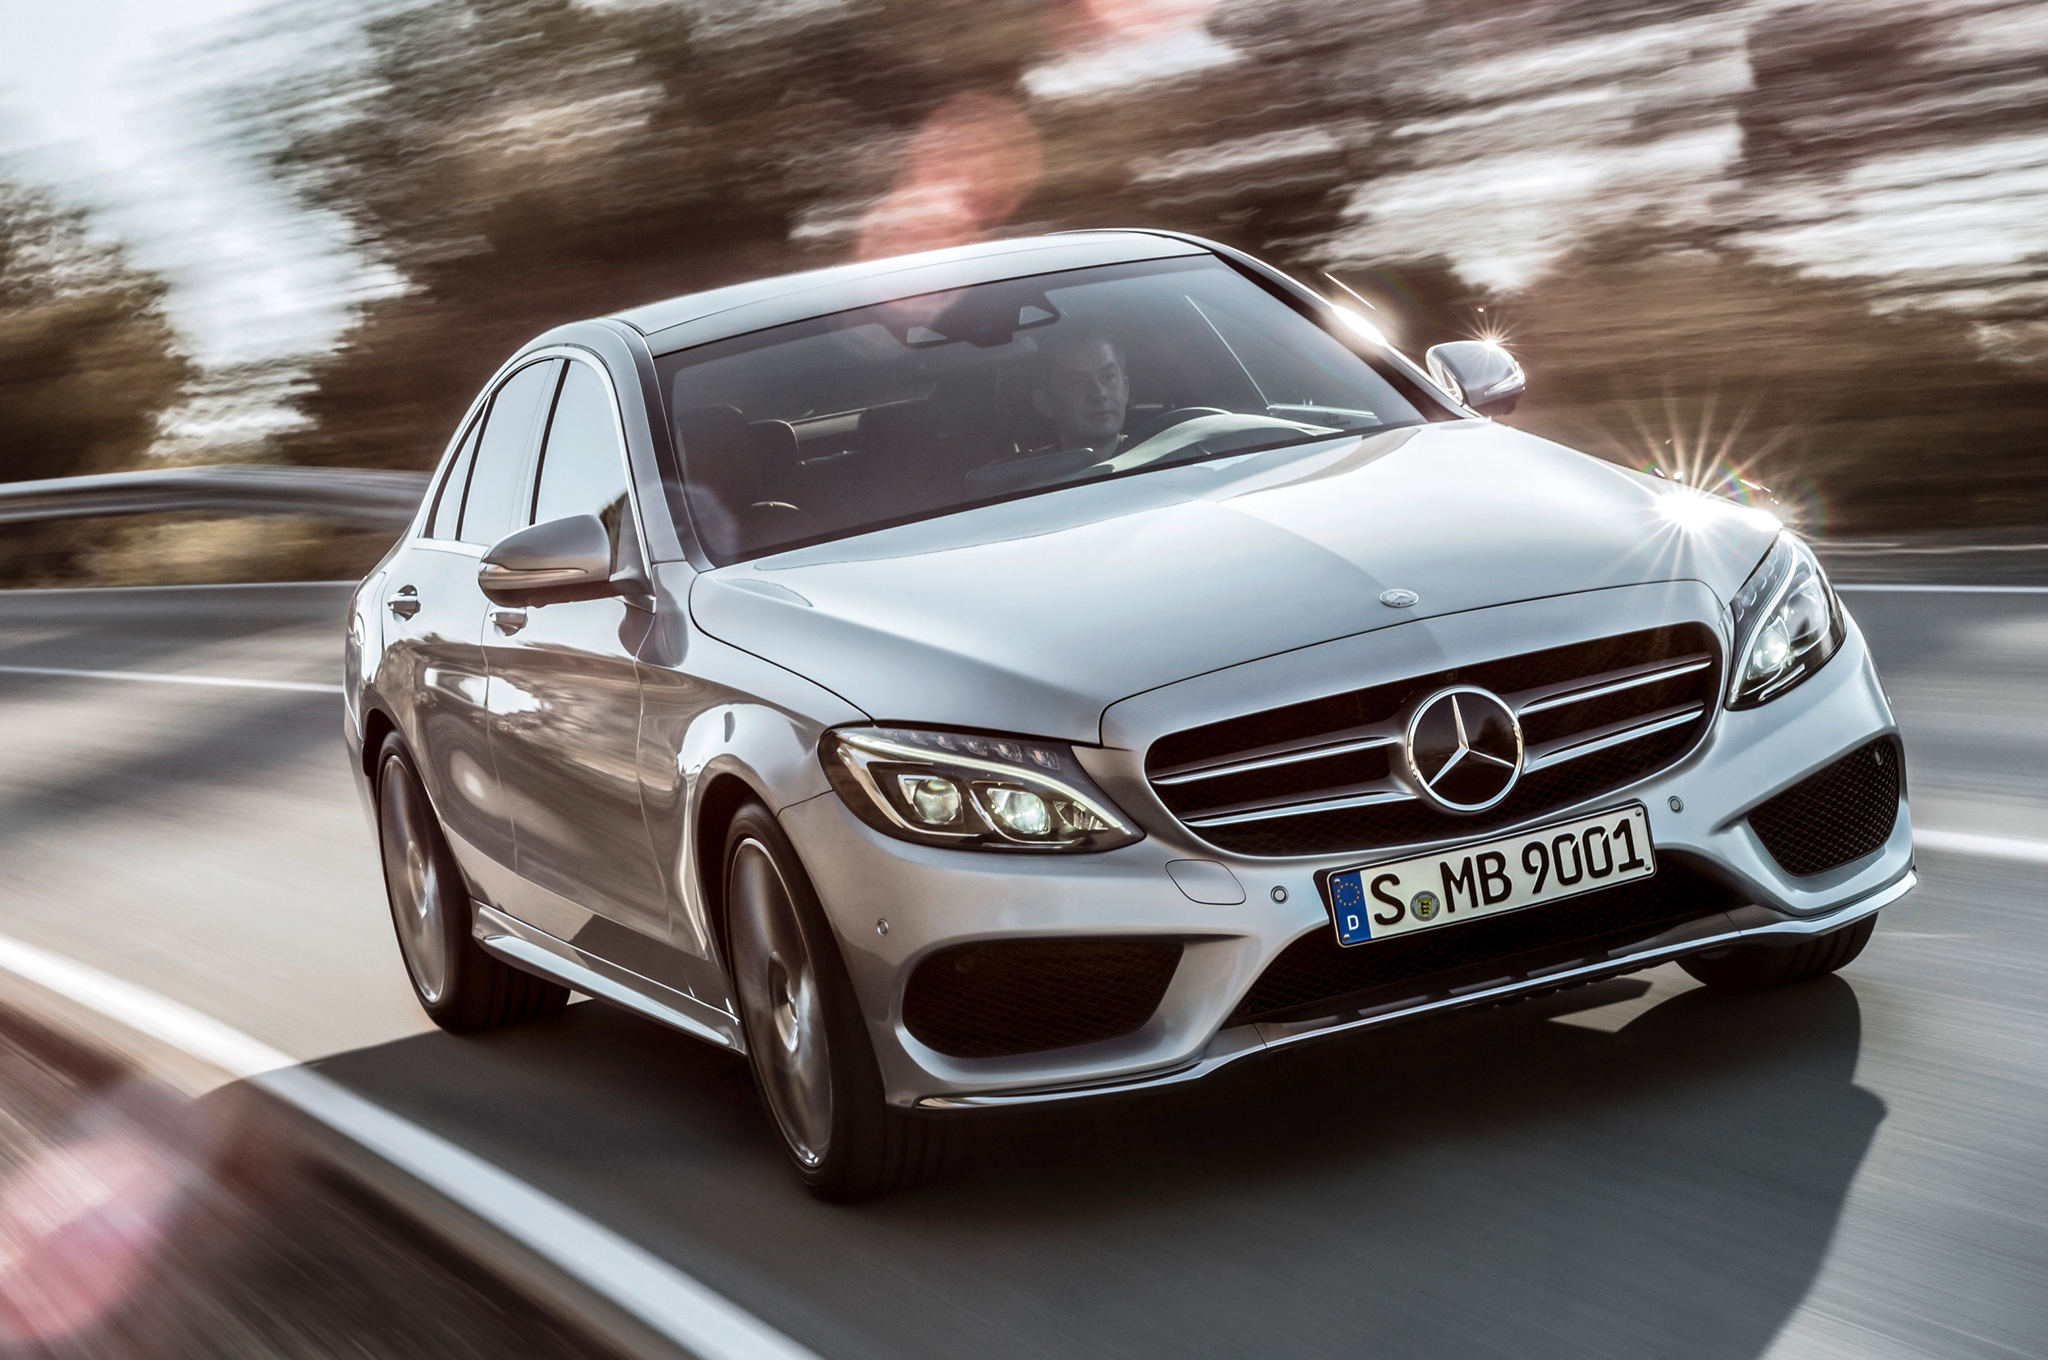 Mercedes benz c class 2015 price review release date for Mercedes benz 2015 c class price